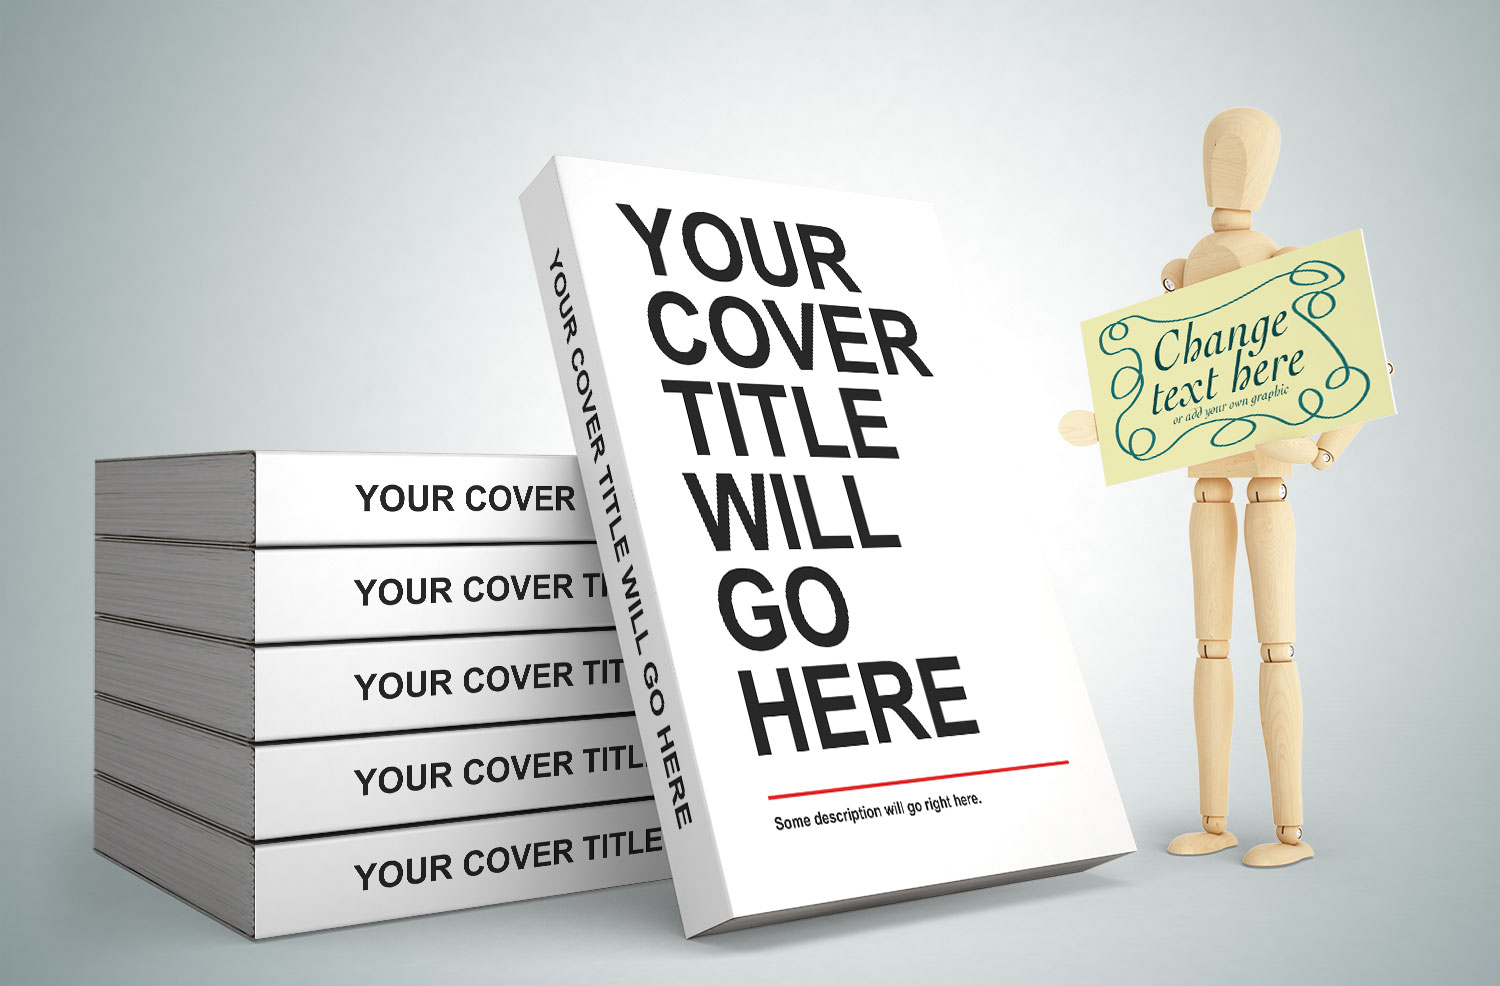 free book mockups psd download - Free Book Pictures